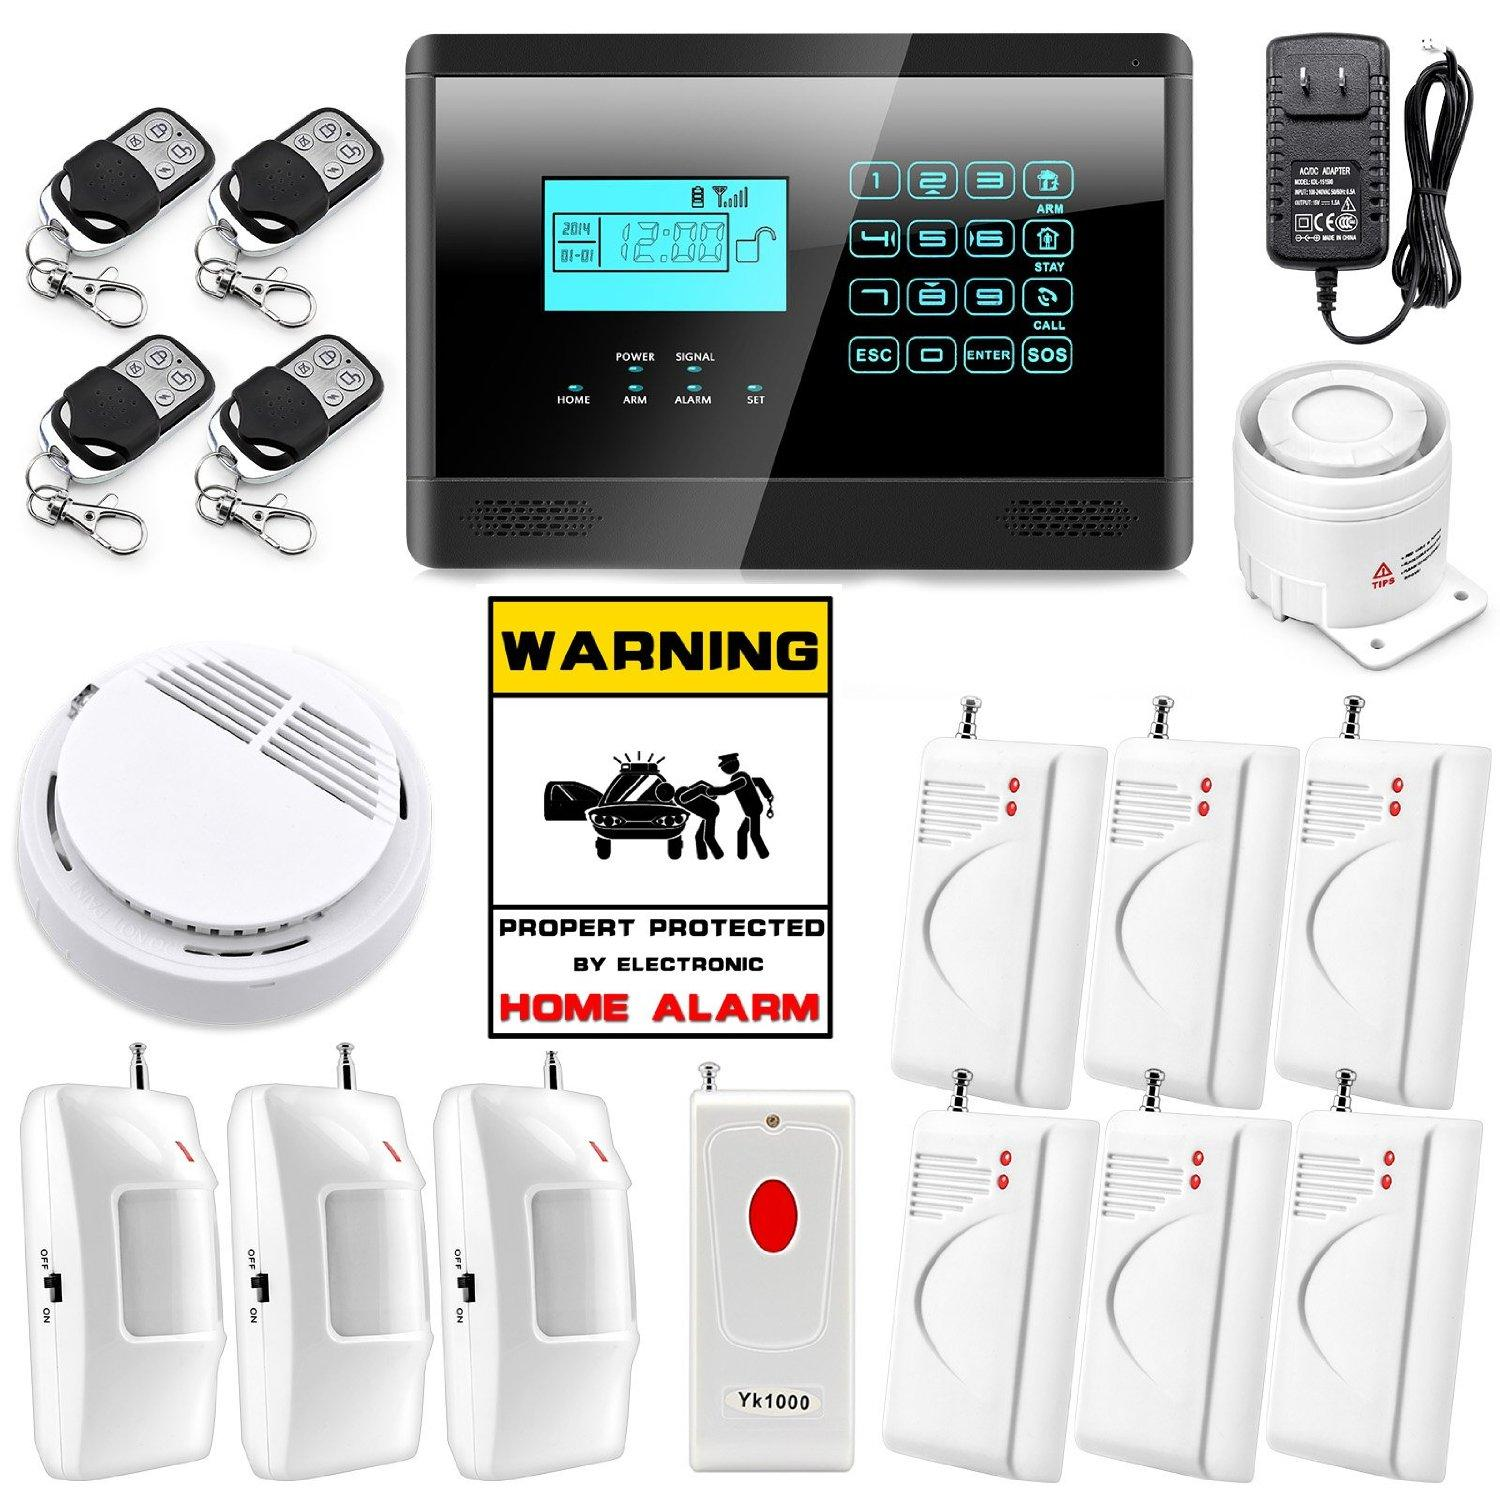 Safearmed TM SF-4099LCD Touch Keypad Wireless GSM SMS Autodial Smart Home House Security Burglar Alarm System Emergency Panic Button Home Se